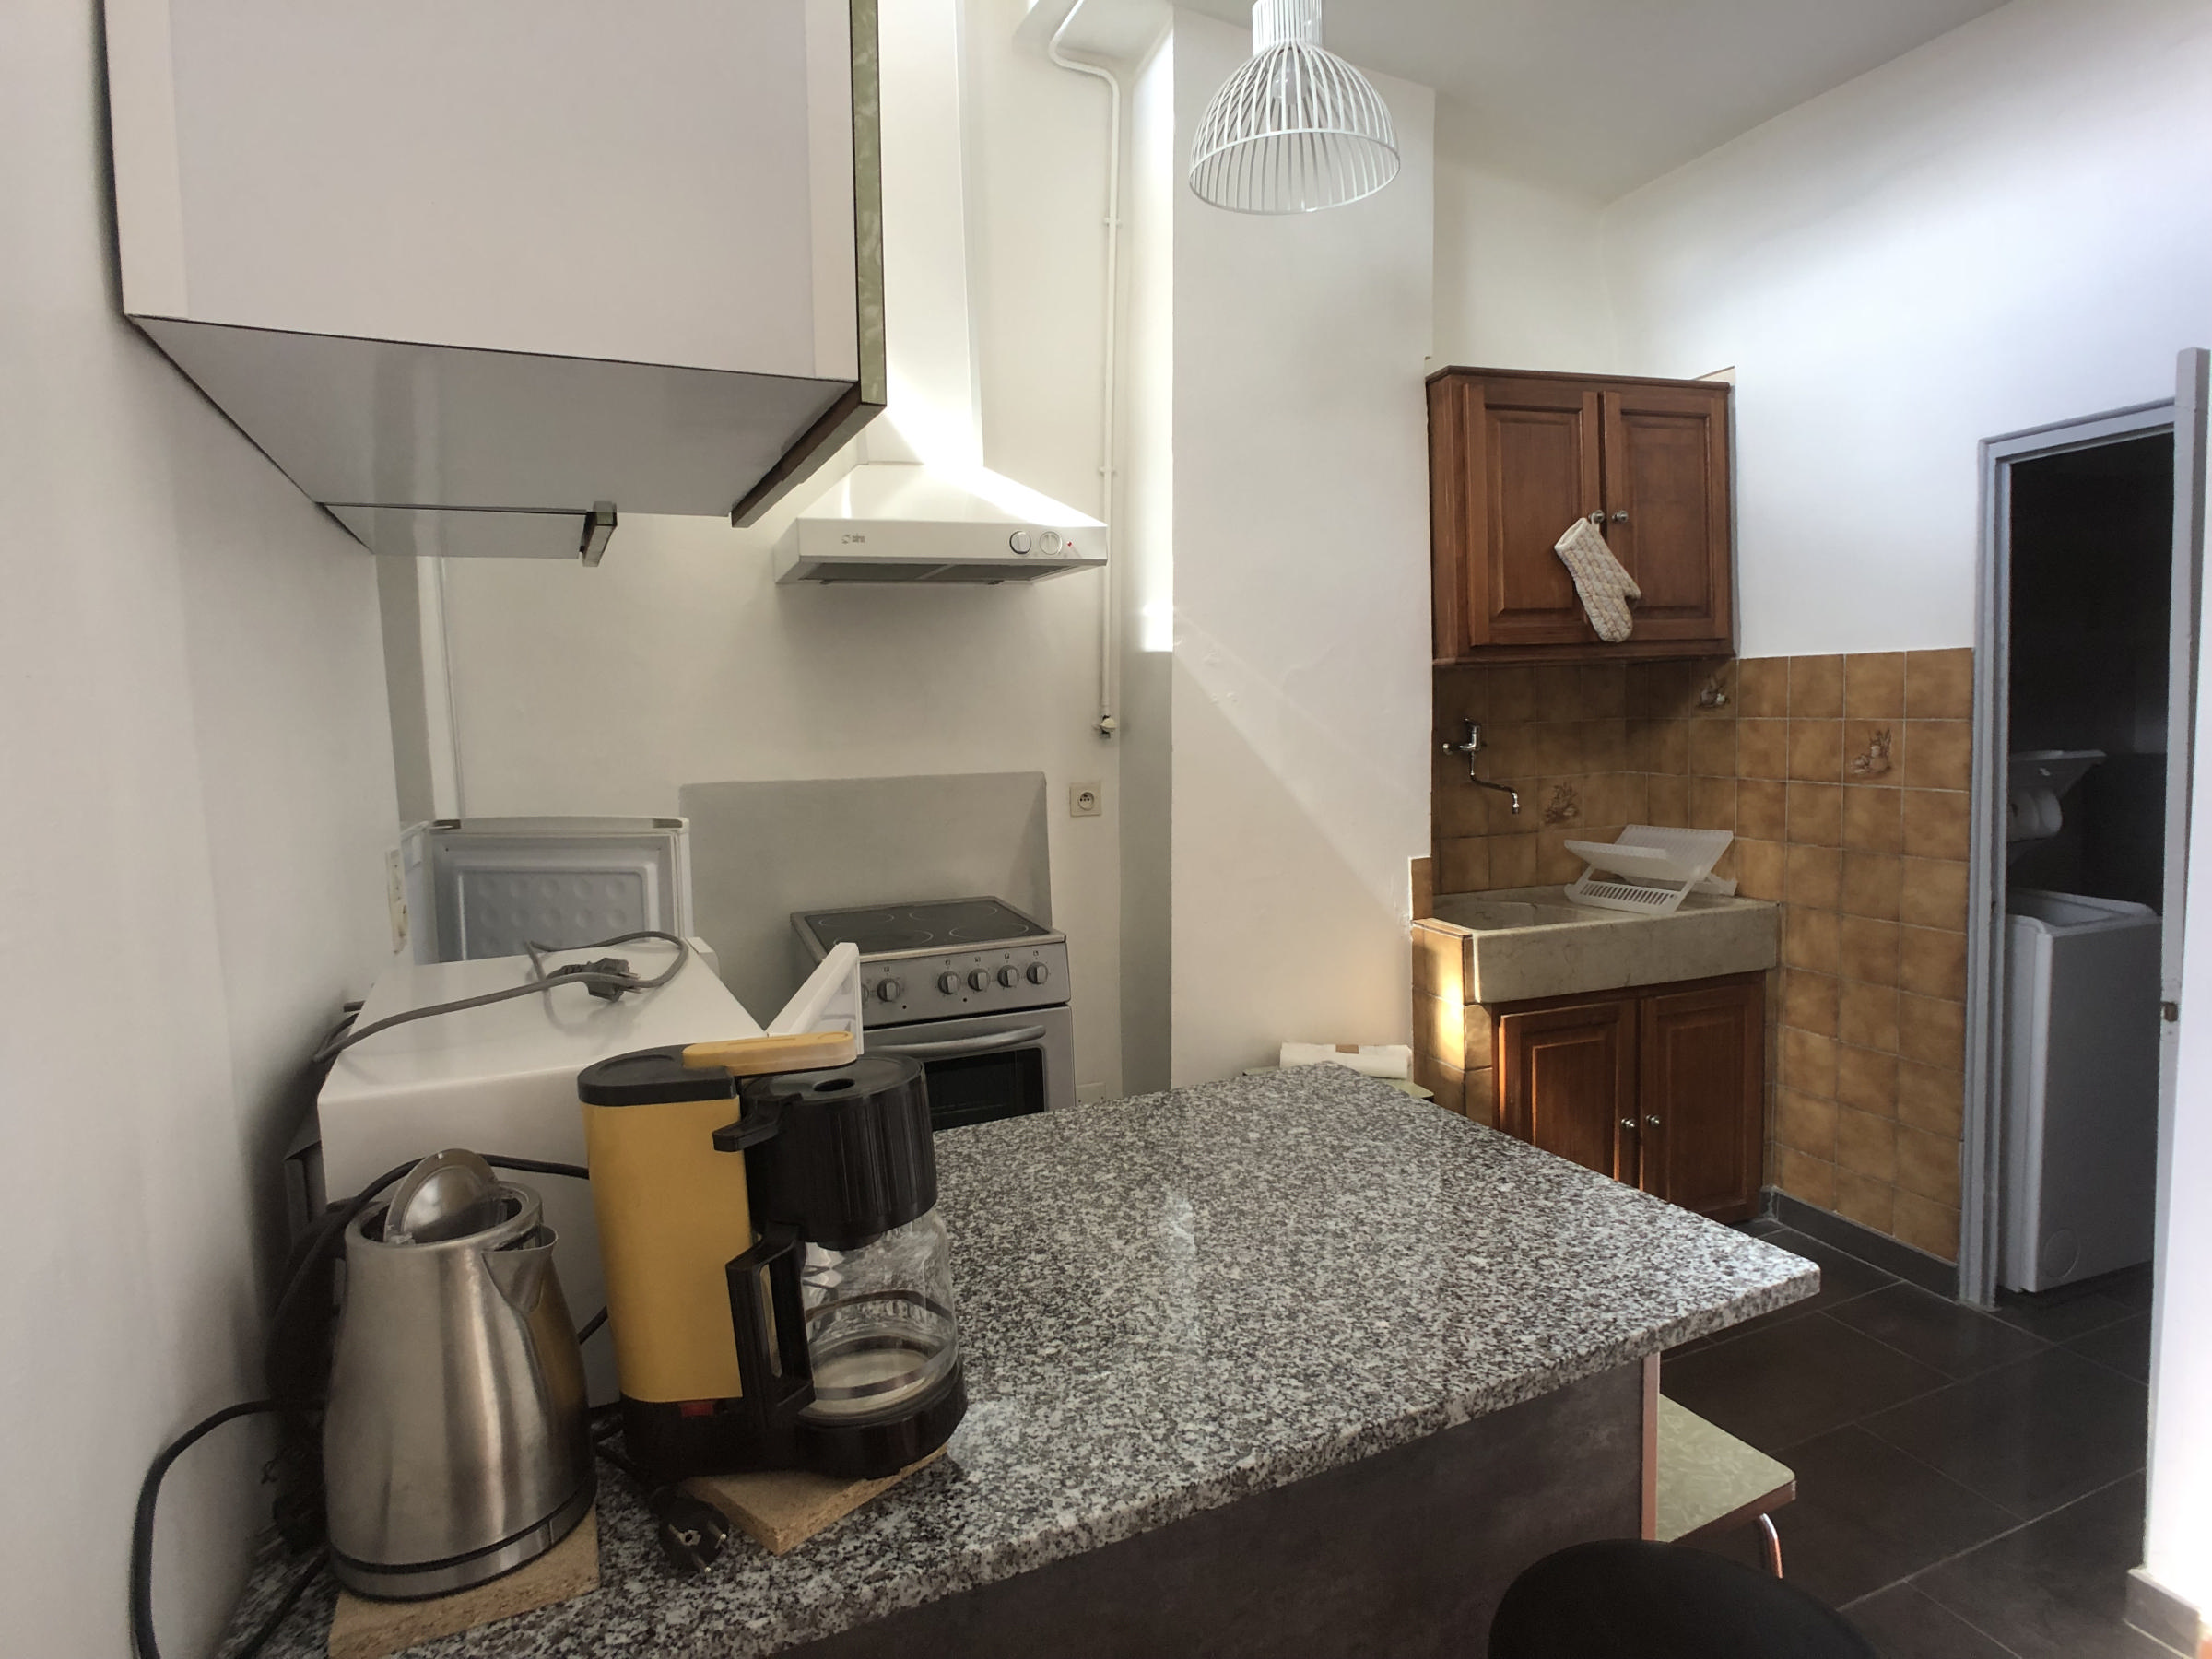 Location Aix Fabrot T2 meublé- Aix fabrot-930€-50,90m² 3/7